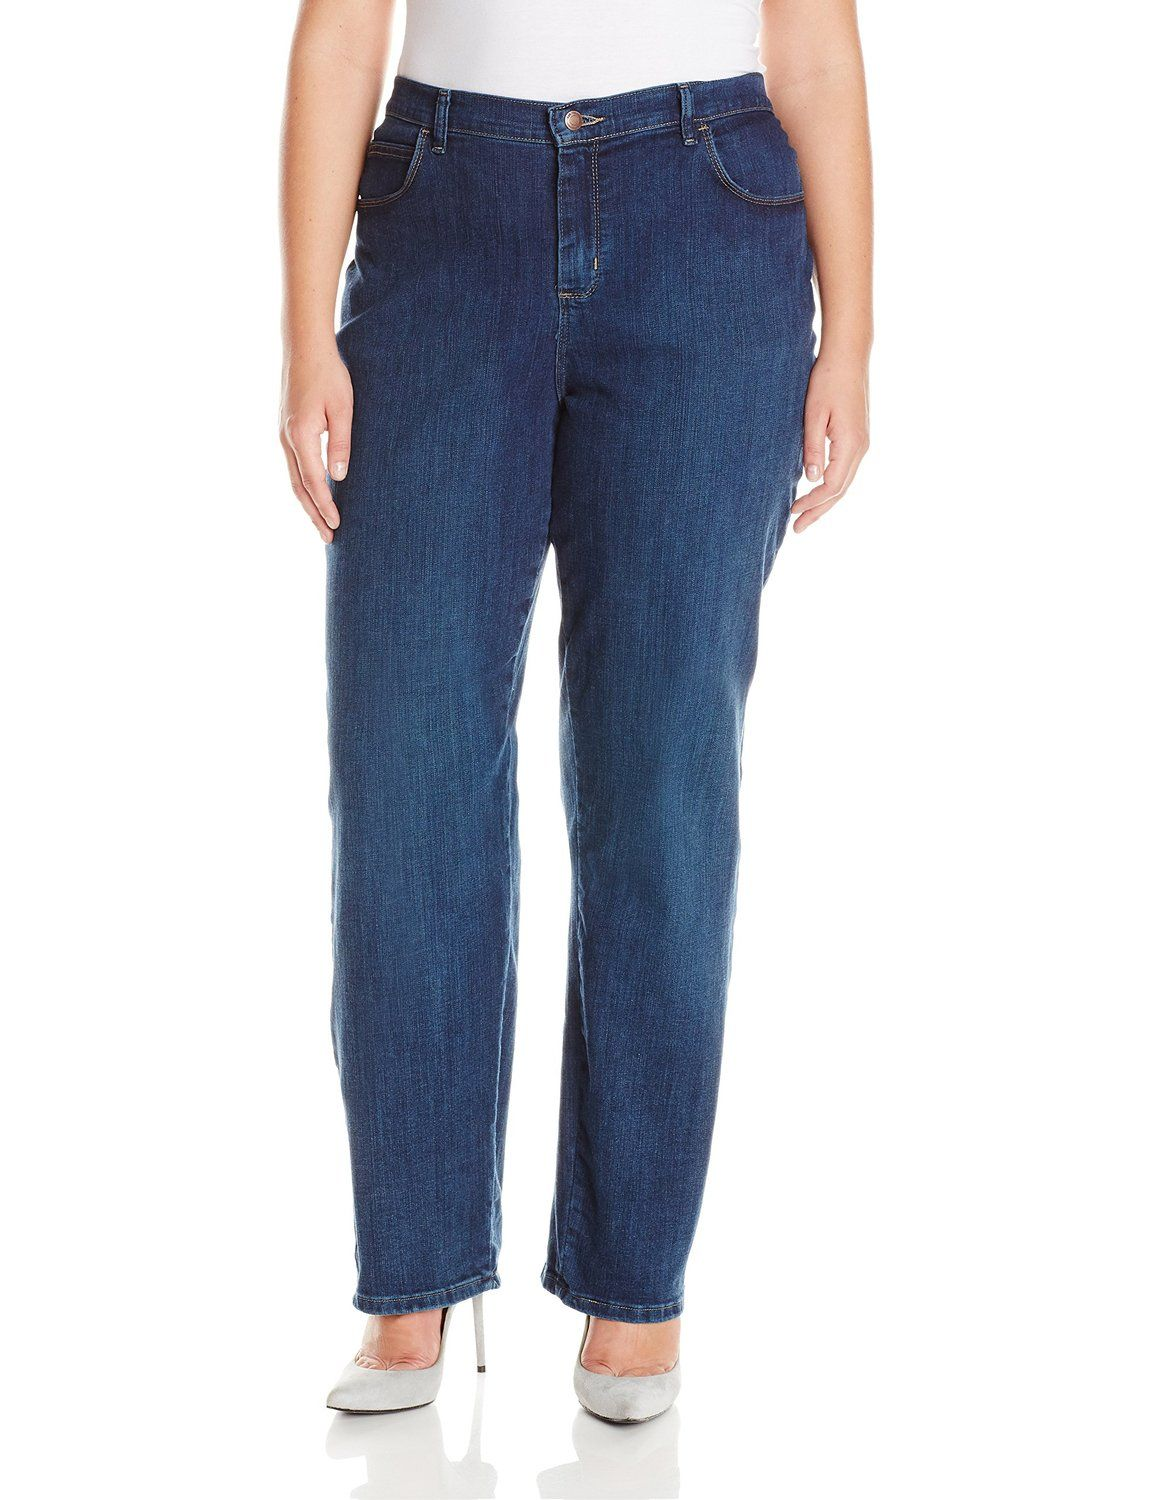 d2956be296a Lee Women s Plus-Size Relaxed Fit Straight Leg Jean   Wow! I love this.  Check it out now!   Plus size jeans